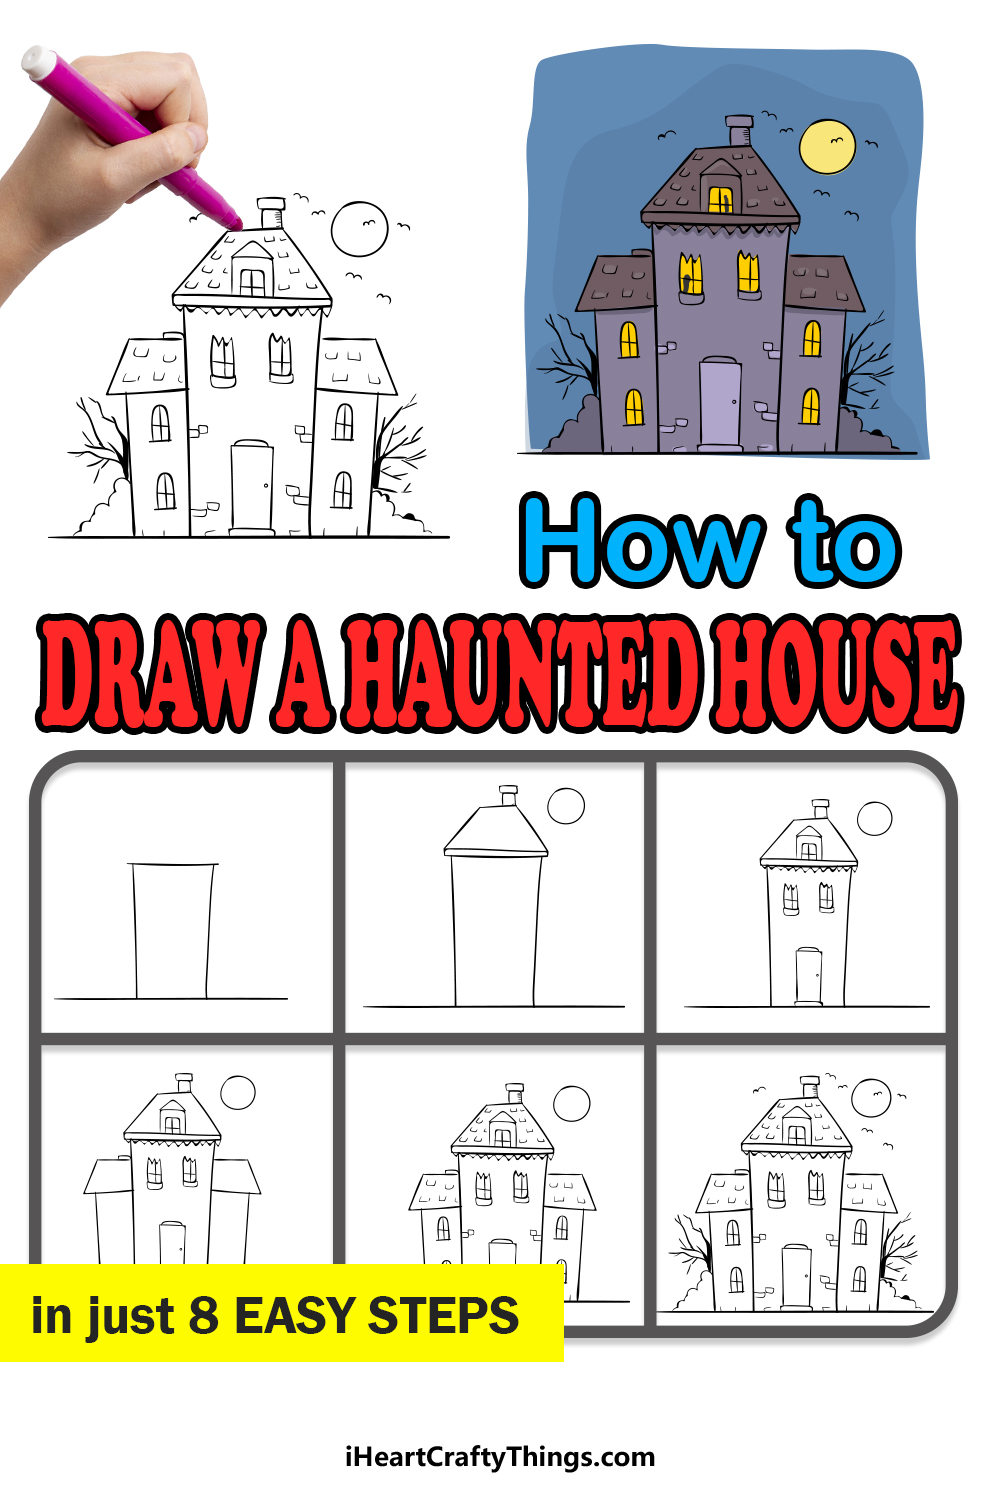 how to draw haunted house in 8 easy steps